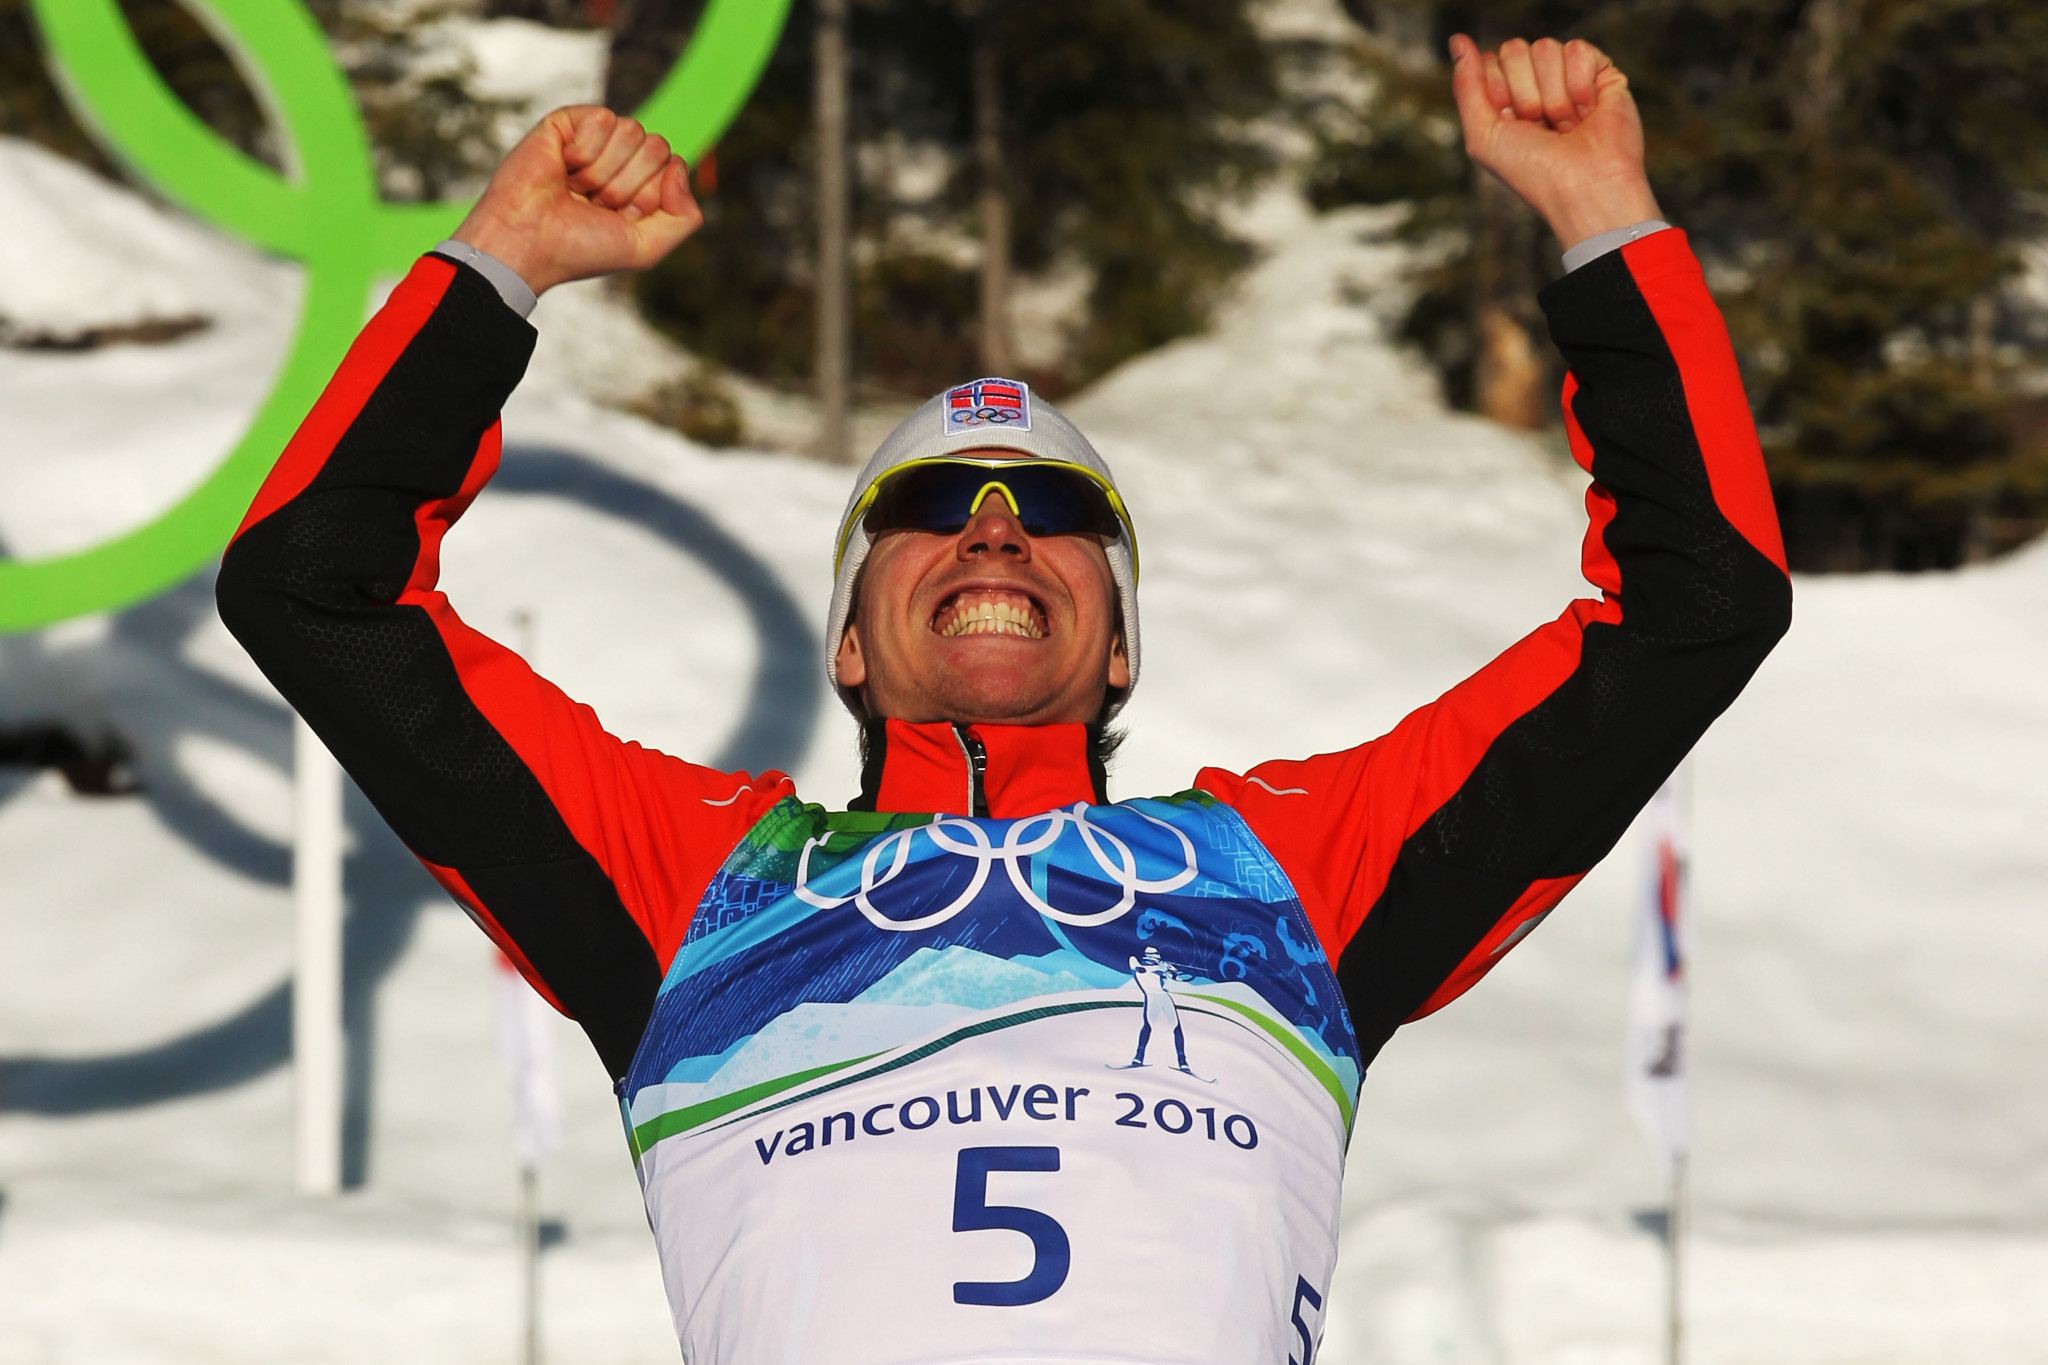 Emile Hegle Svendsen won his first Olympic title at Vancouver 2010 ©Getty Images